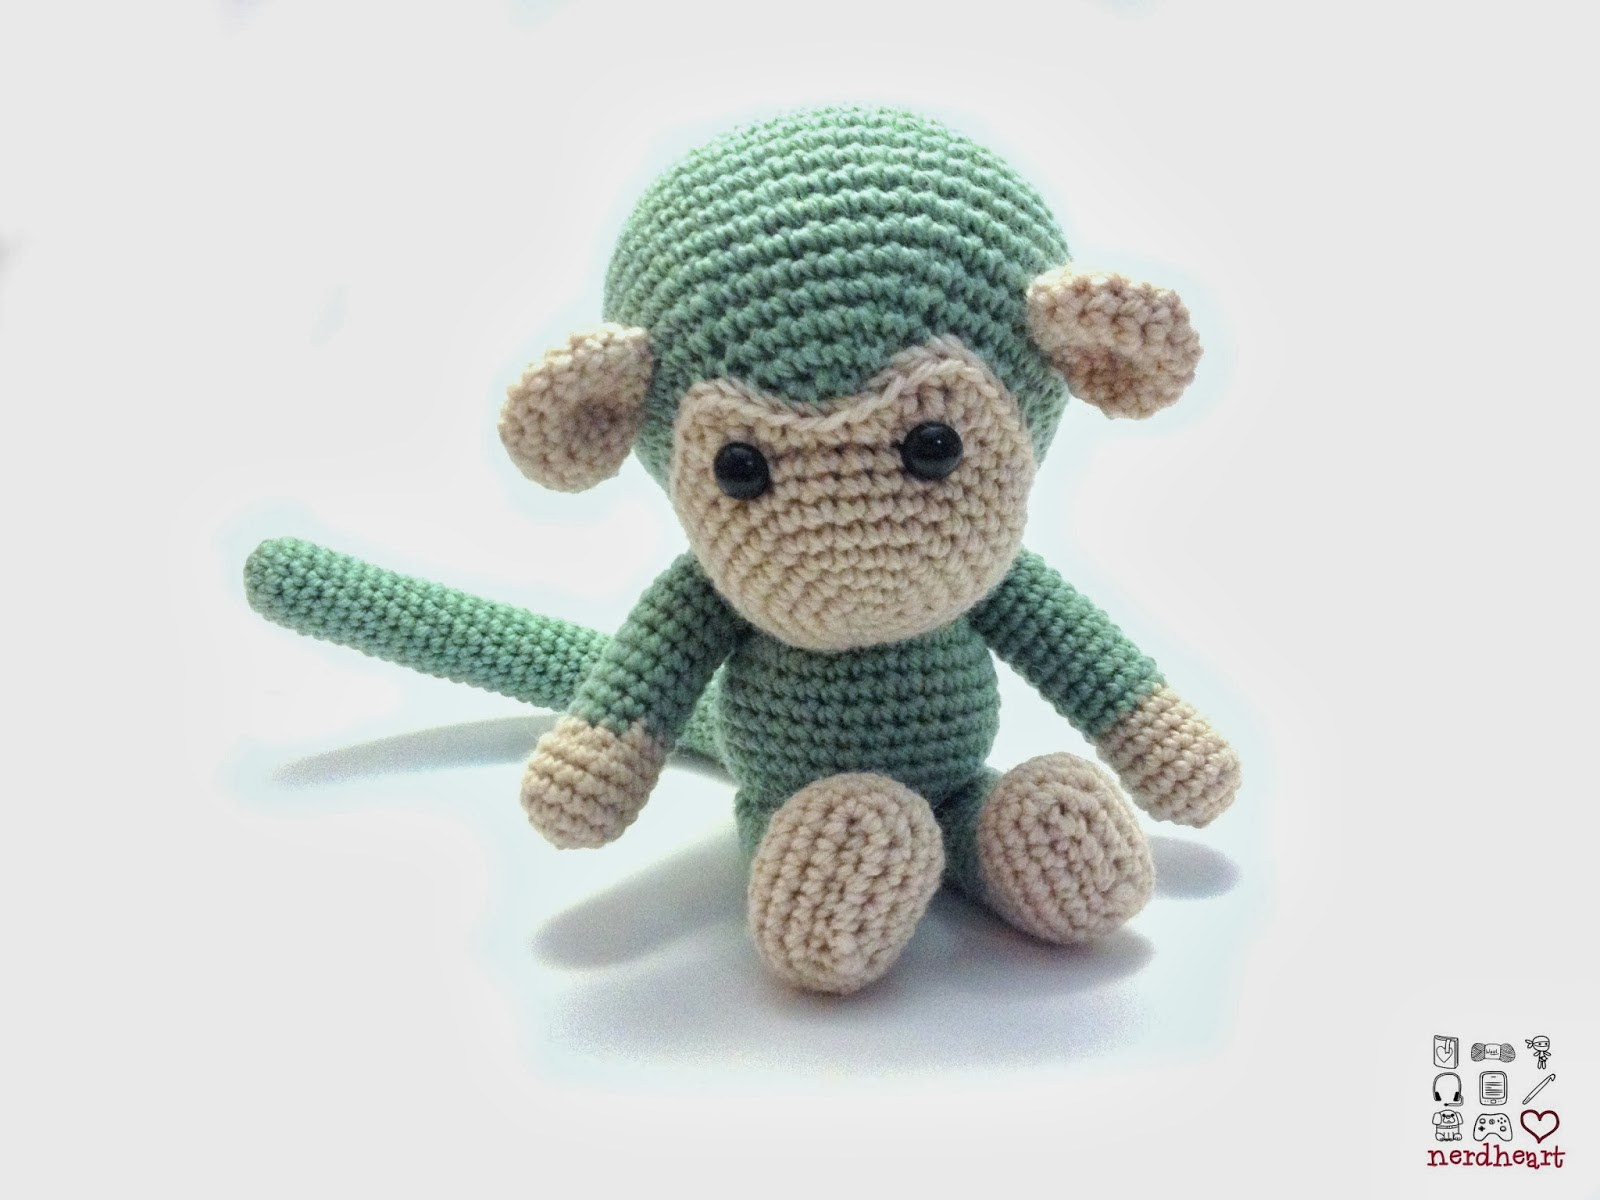 Nerdheart Crochet Monkey And Experimenting With A Light Box